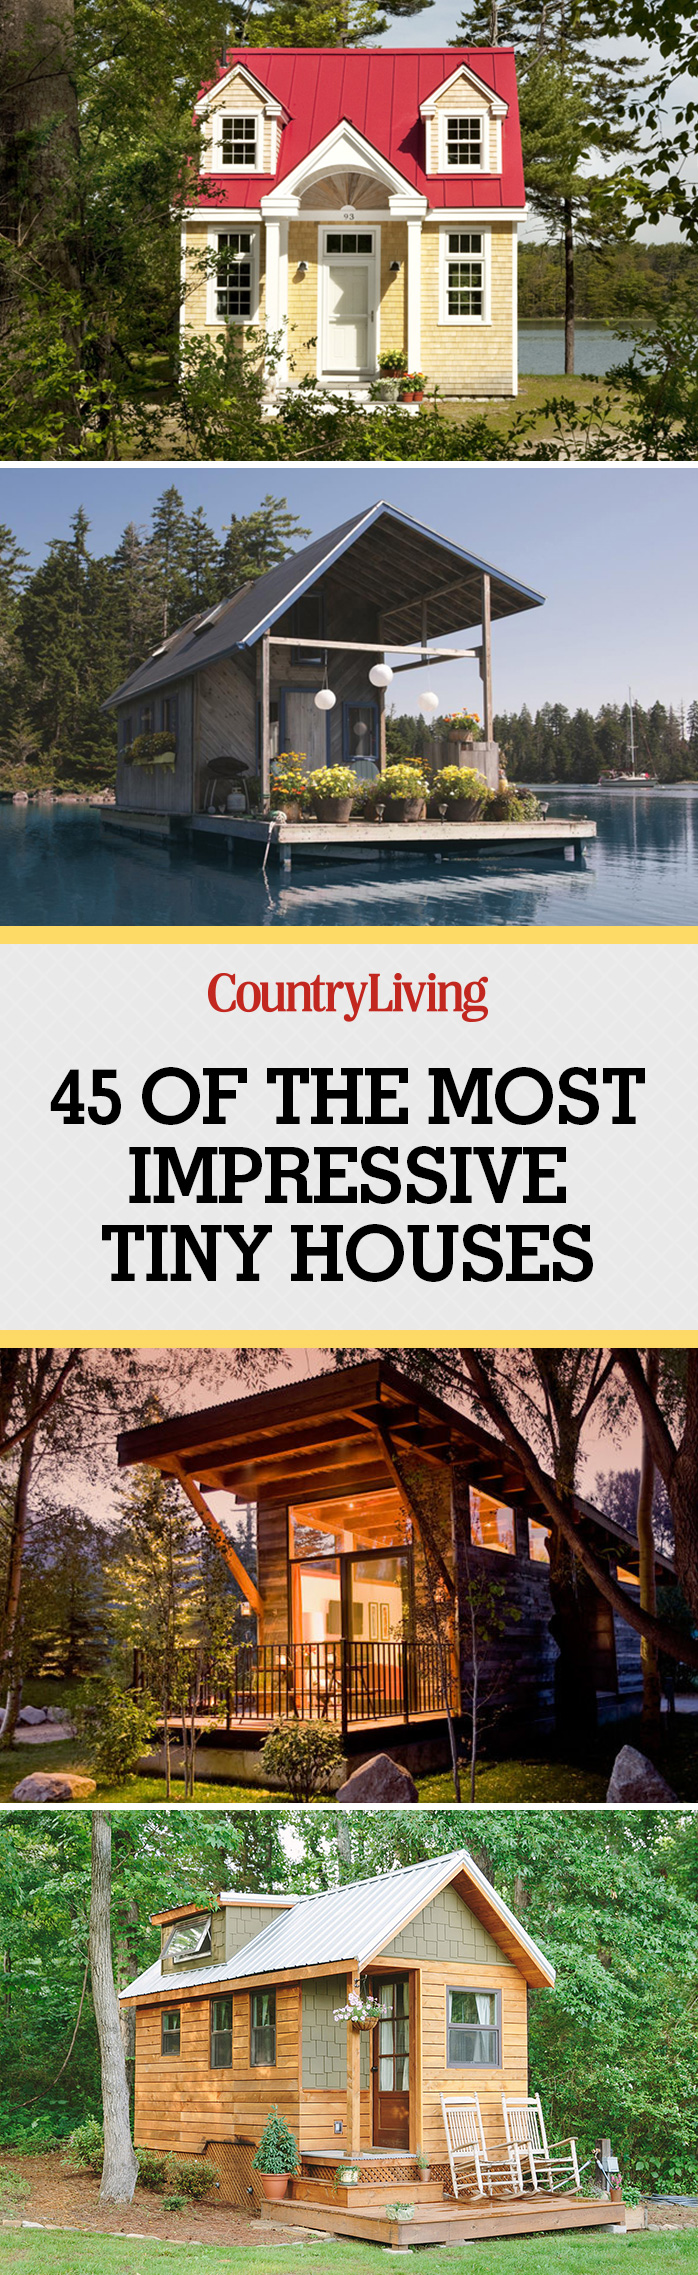 Tiny homes cottage country - Tiny Homes Cottage Country 29